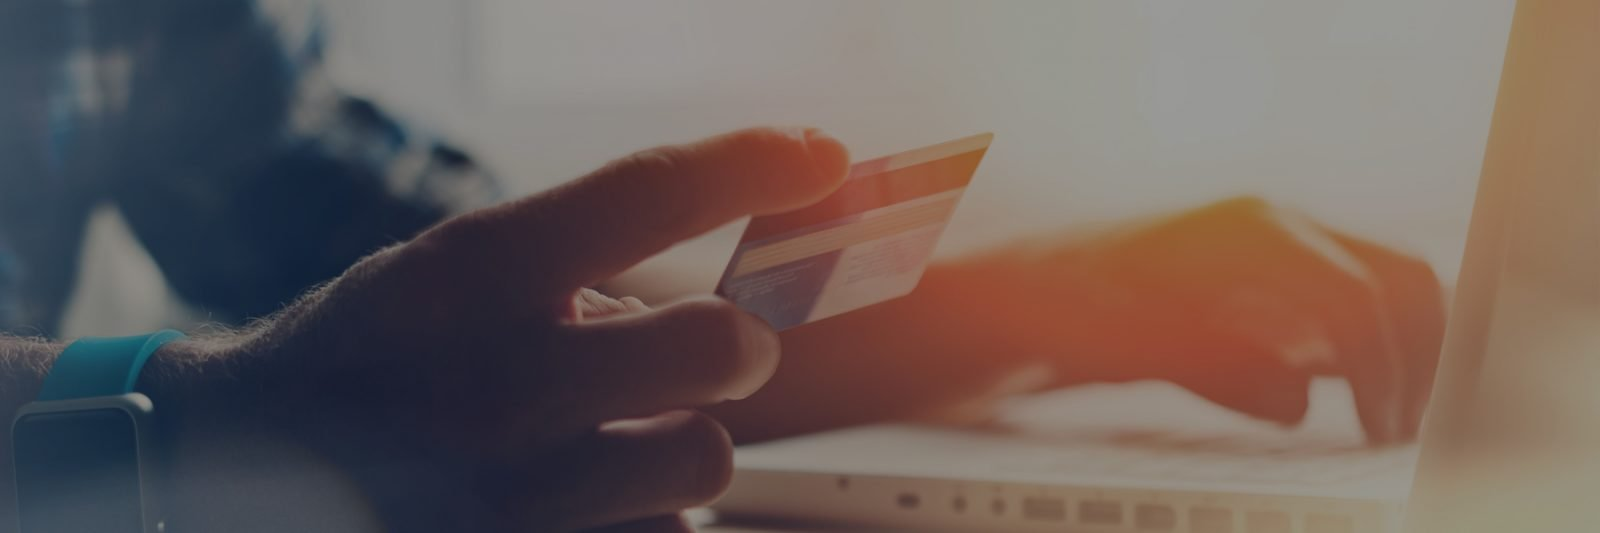 5 reasons to switch to Direct Debit